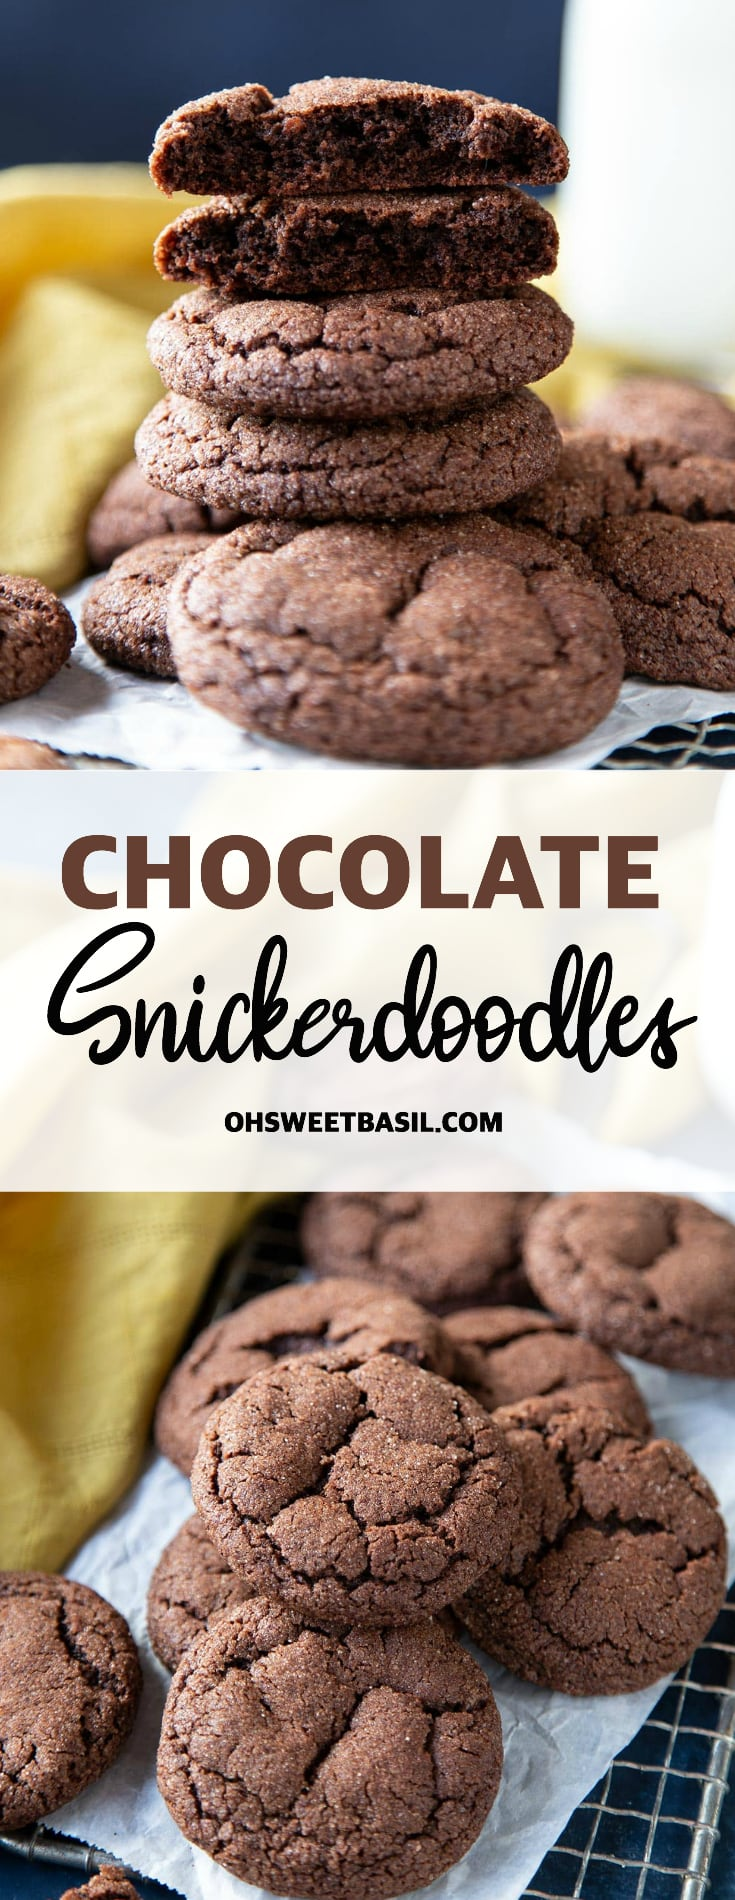 Chocolate snickerdoodle cookies on a metal grate